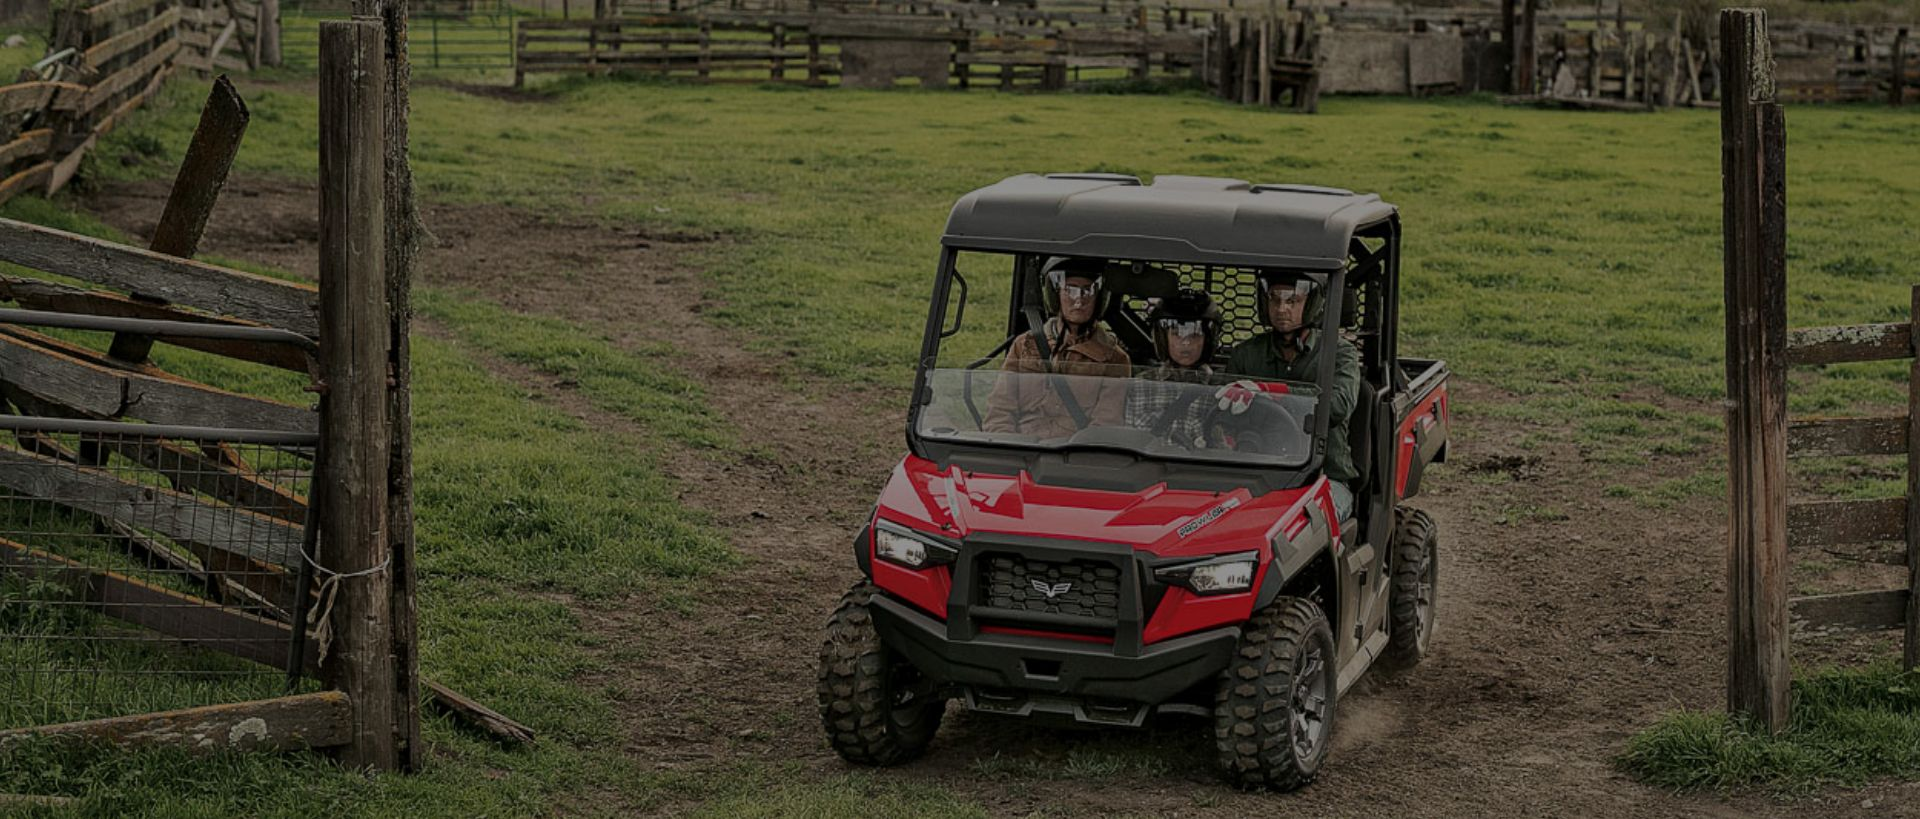 2019 Textron Off Road Prowler ATV